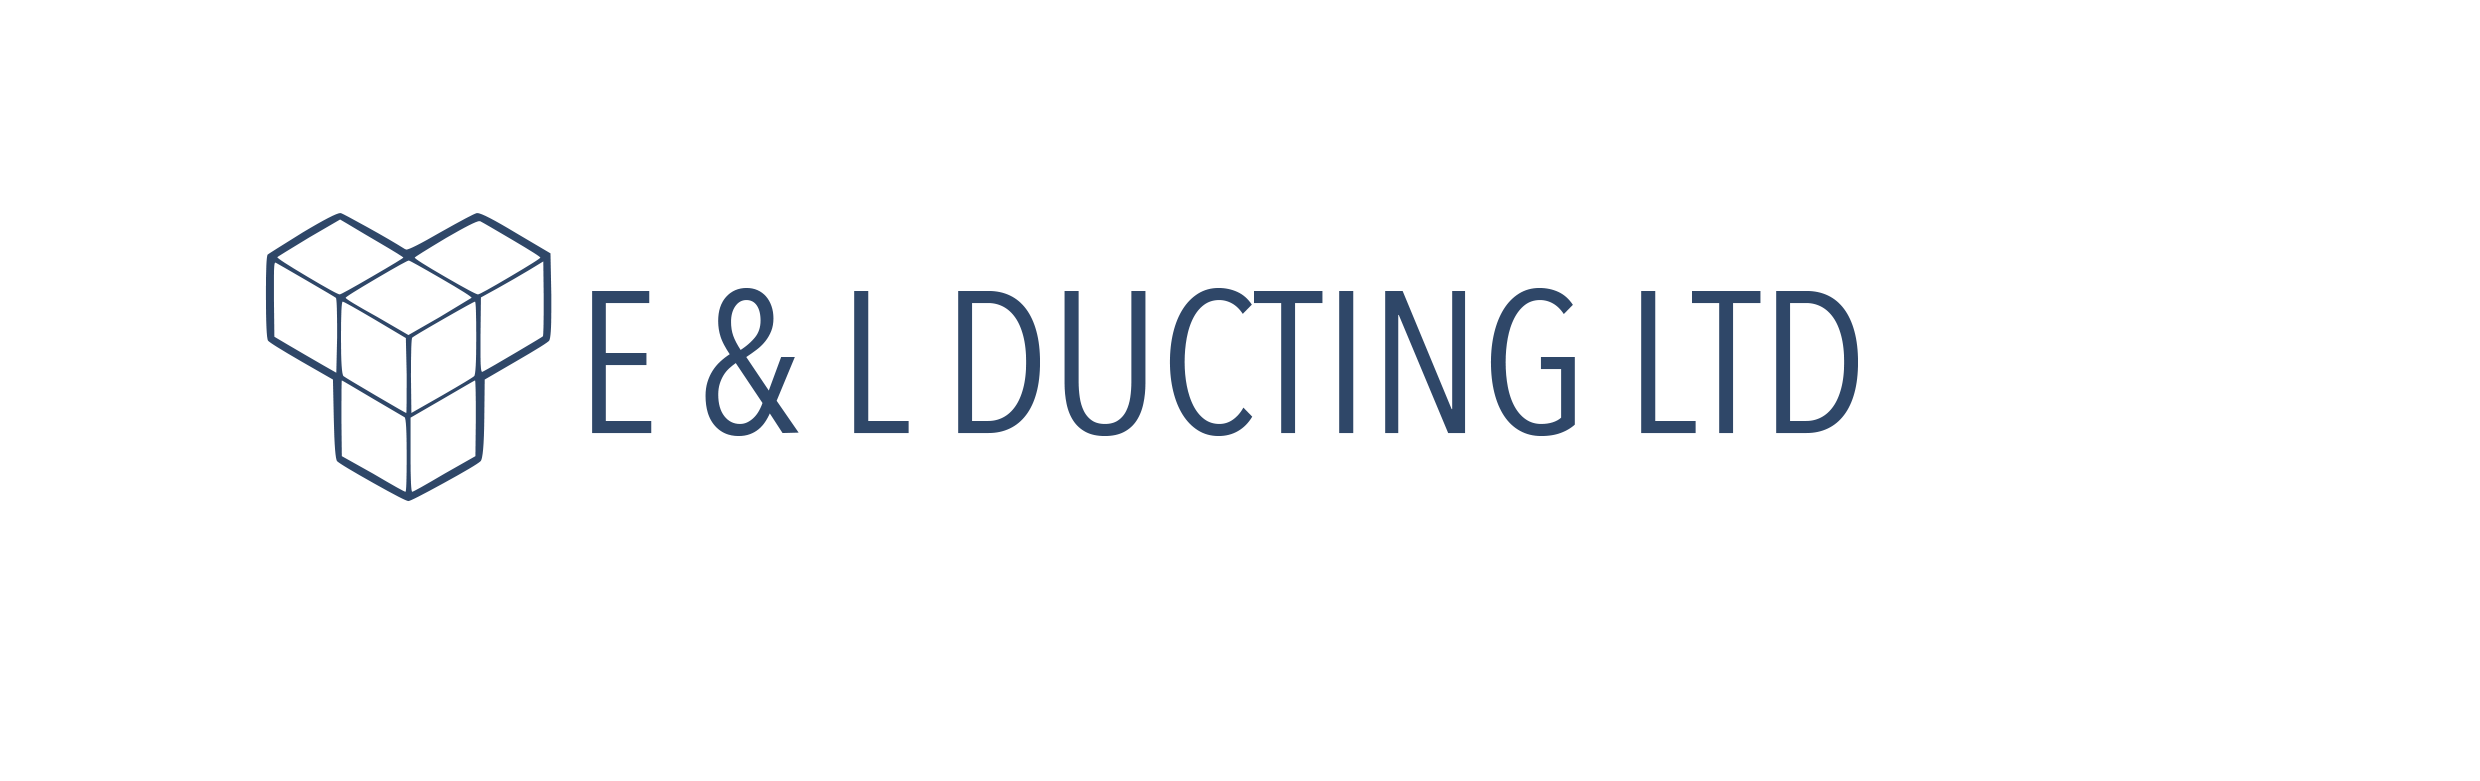 E & L Ducting Ltd